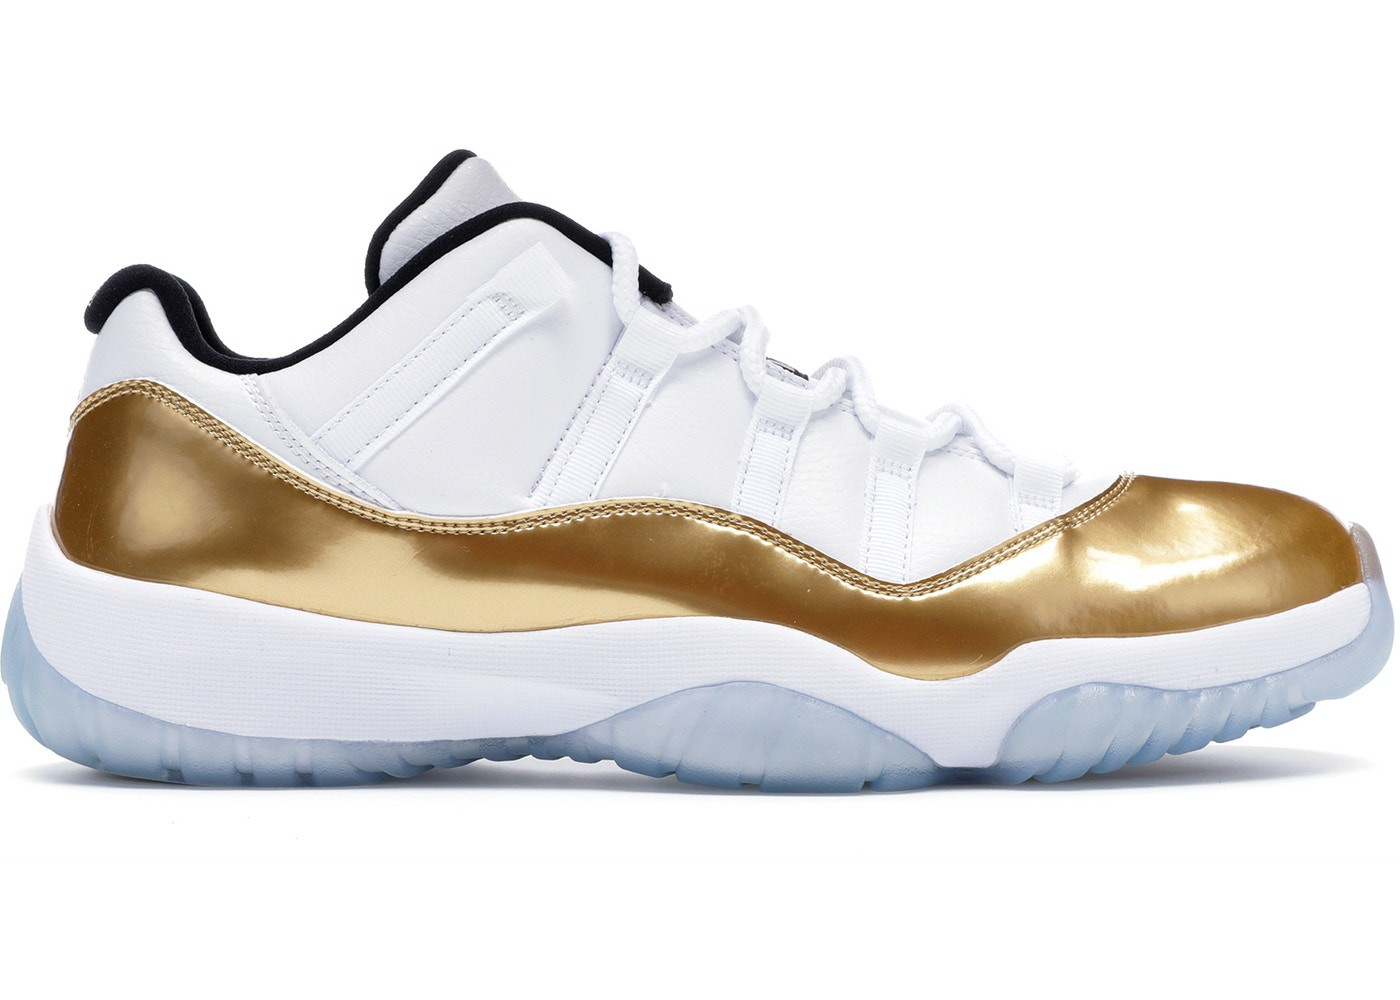 Nike Air Jordan 11 Retro Low Closing Ceremony 528895-103